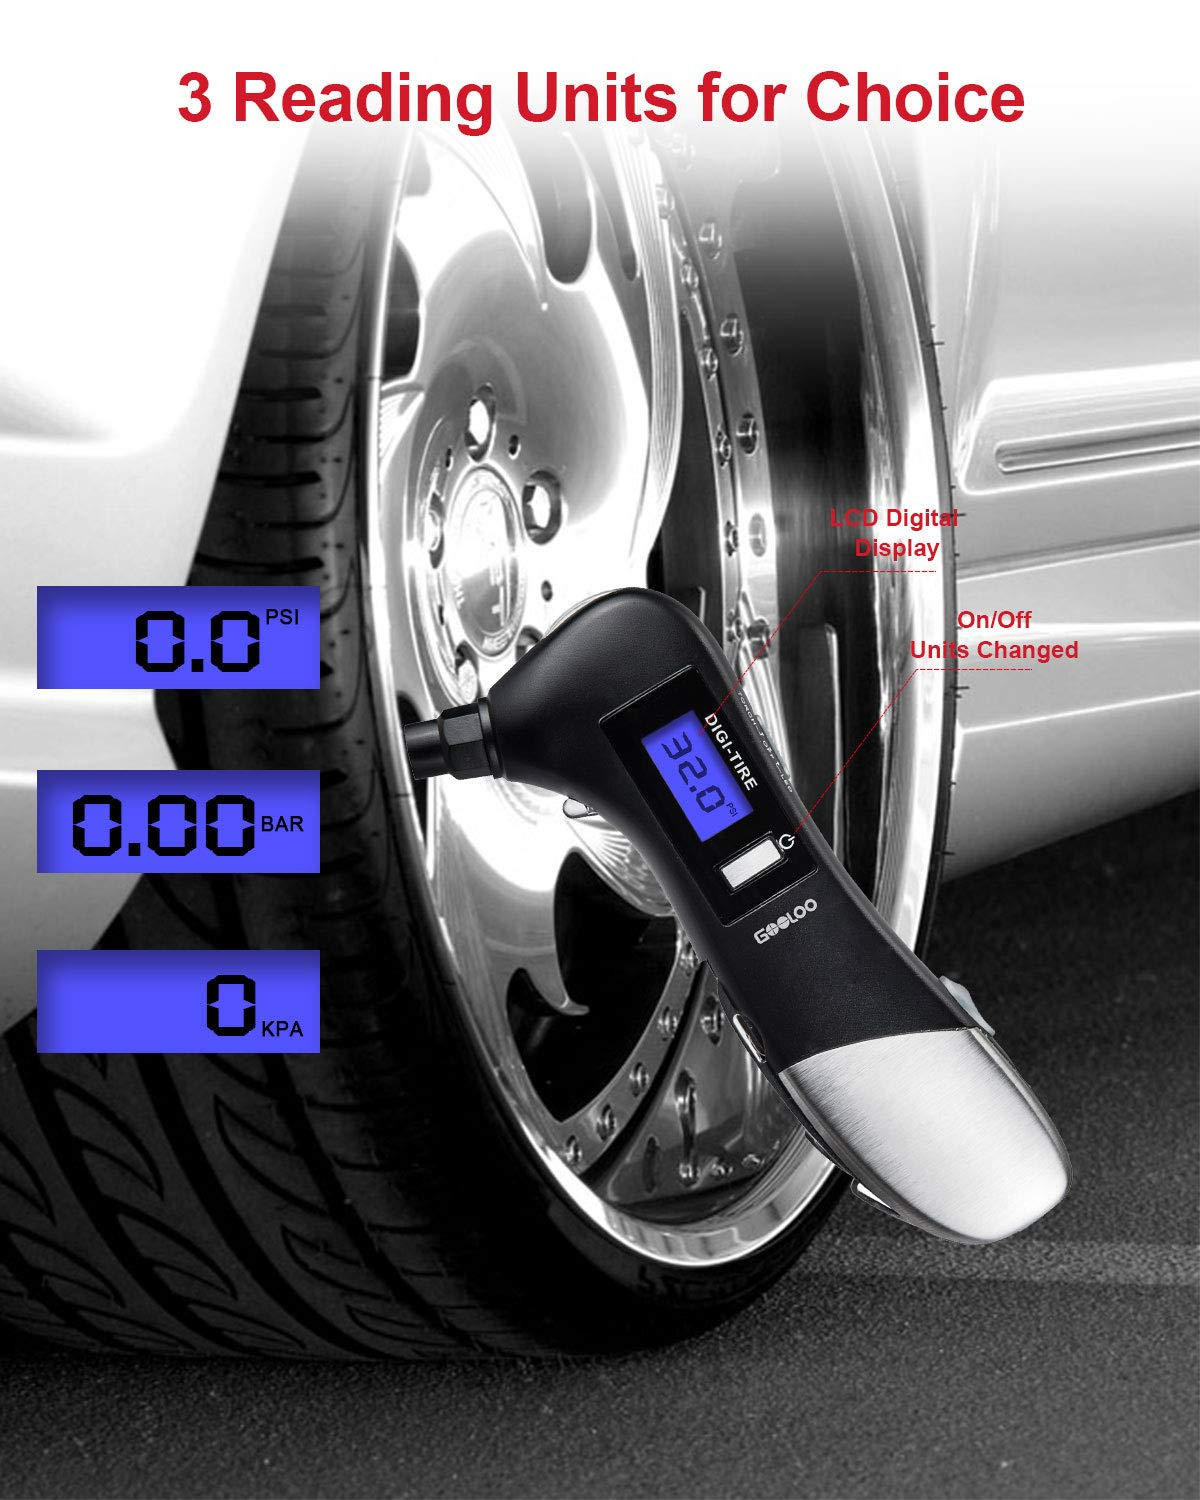 1 Pack GOOLOO Tire Gauges 150 PSI Digital Tire Pressure Gauge with LCD Display and LED Flashlight for Car Truck Motorcycles Bicycle Multifunction 9 in 1 Car Gadget